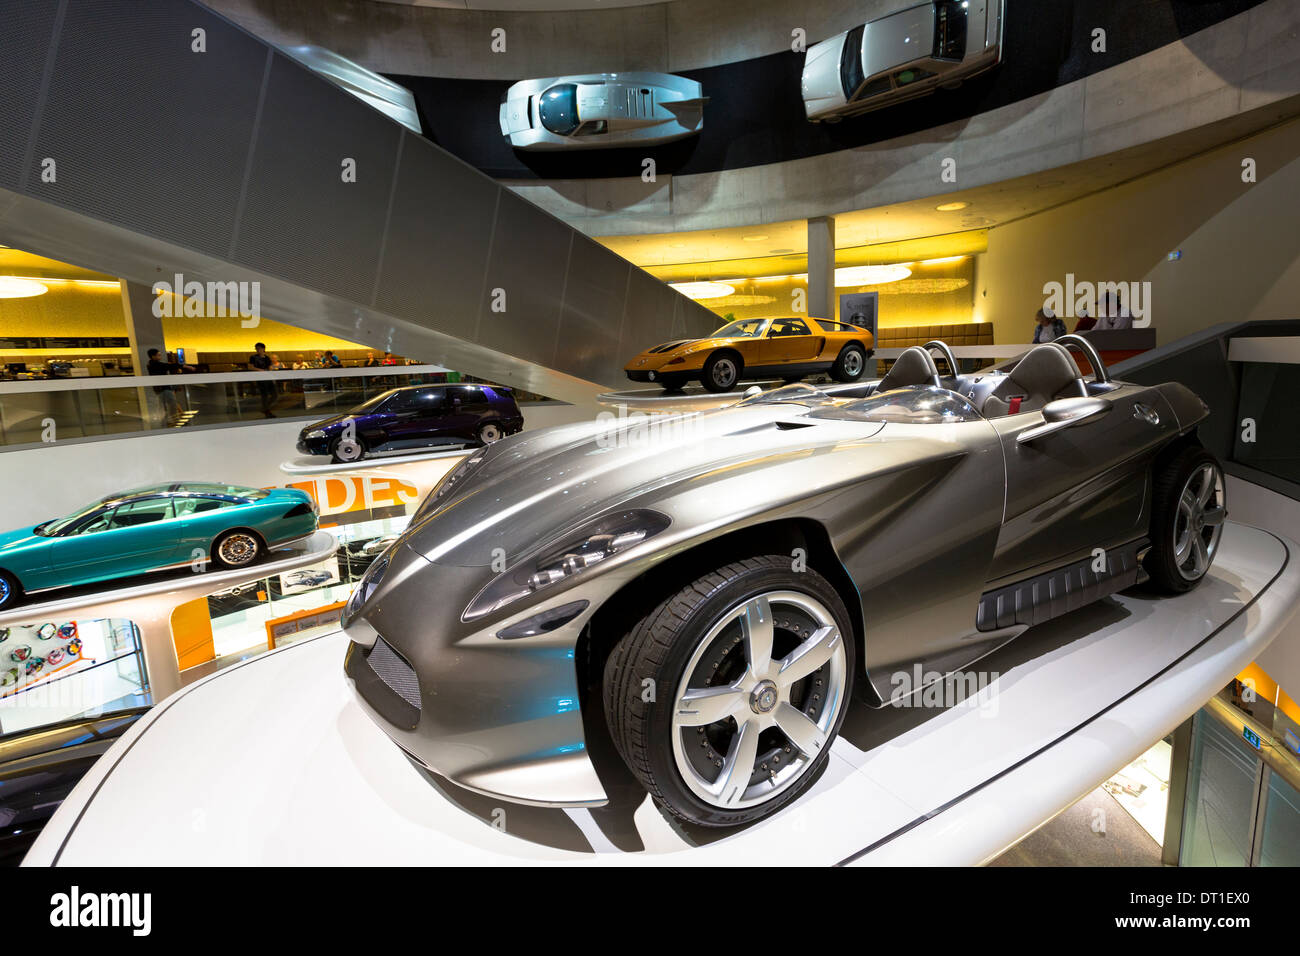 Mercedes-Benz concept cars in museum gallery in Stuttgart, Germany. In front is Mercedes F400 Carving V6 presented 2001 - Stock Image